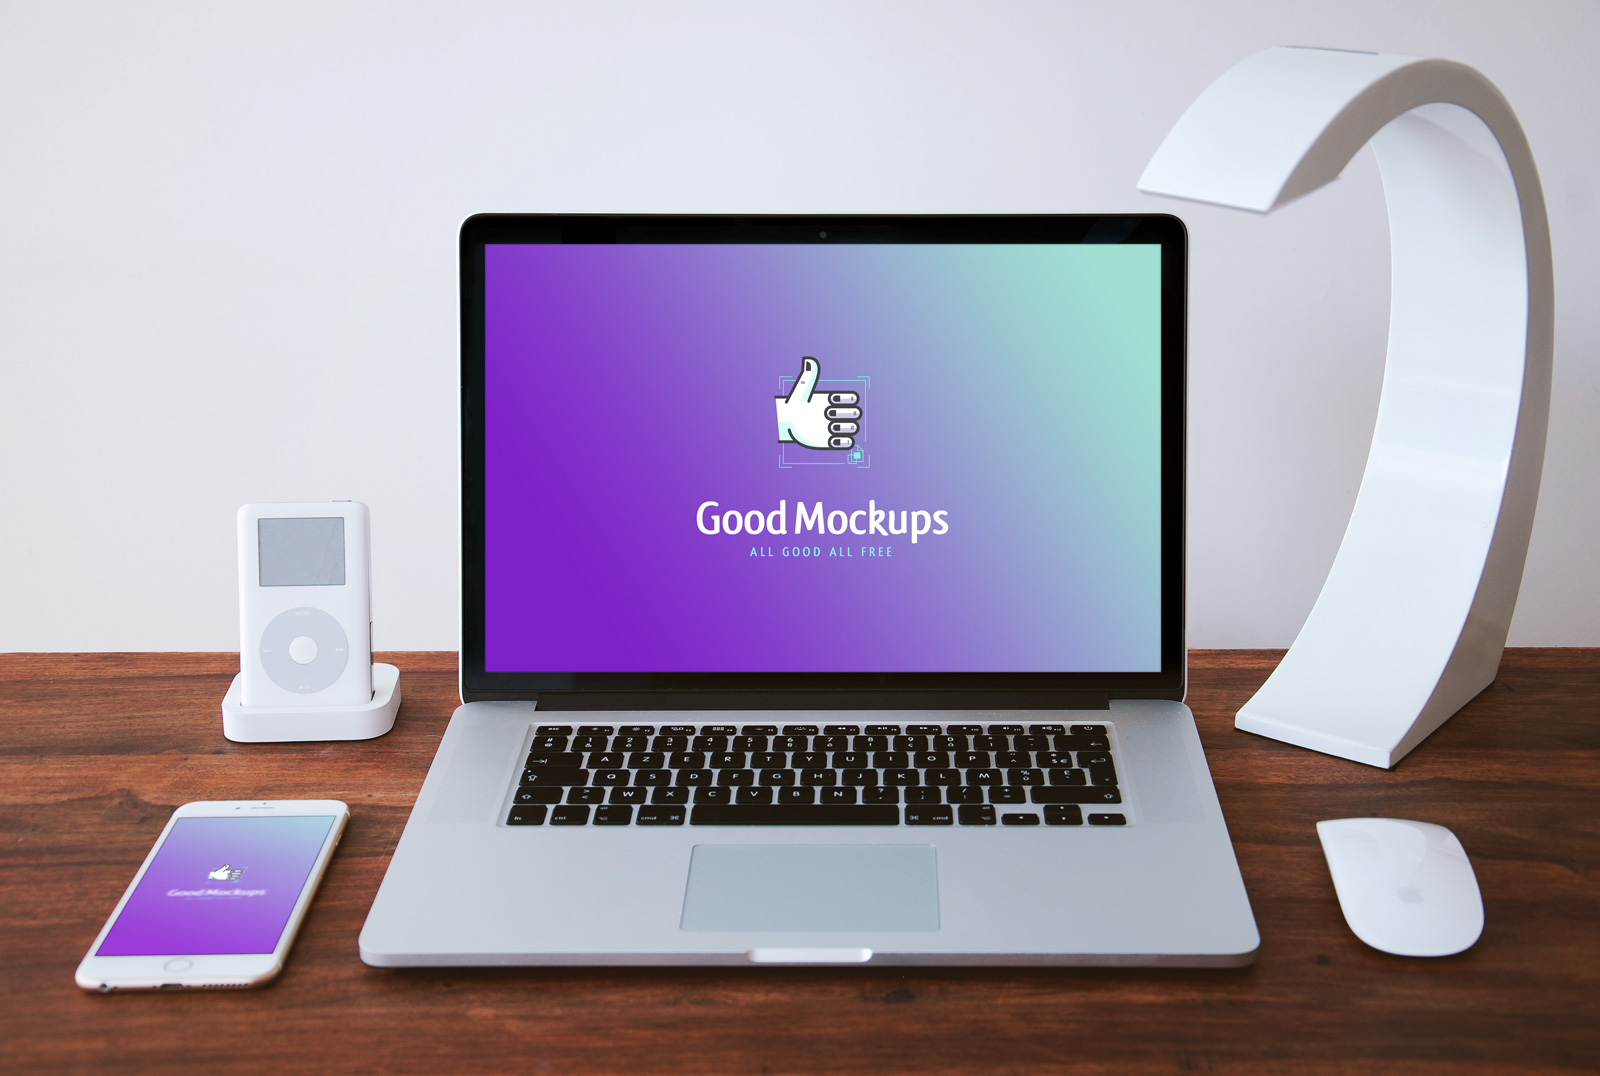 Free-iPhone-&-MacBook-Pro-Photo-Mockup-PSD-2